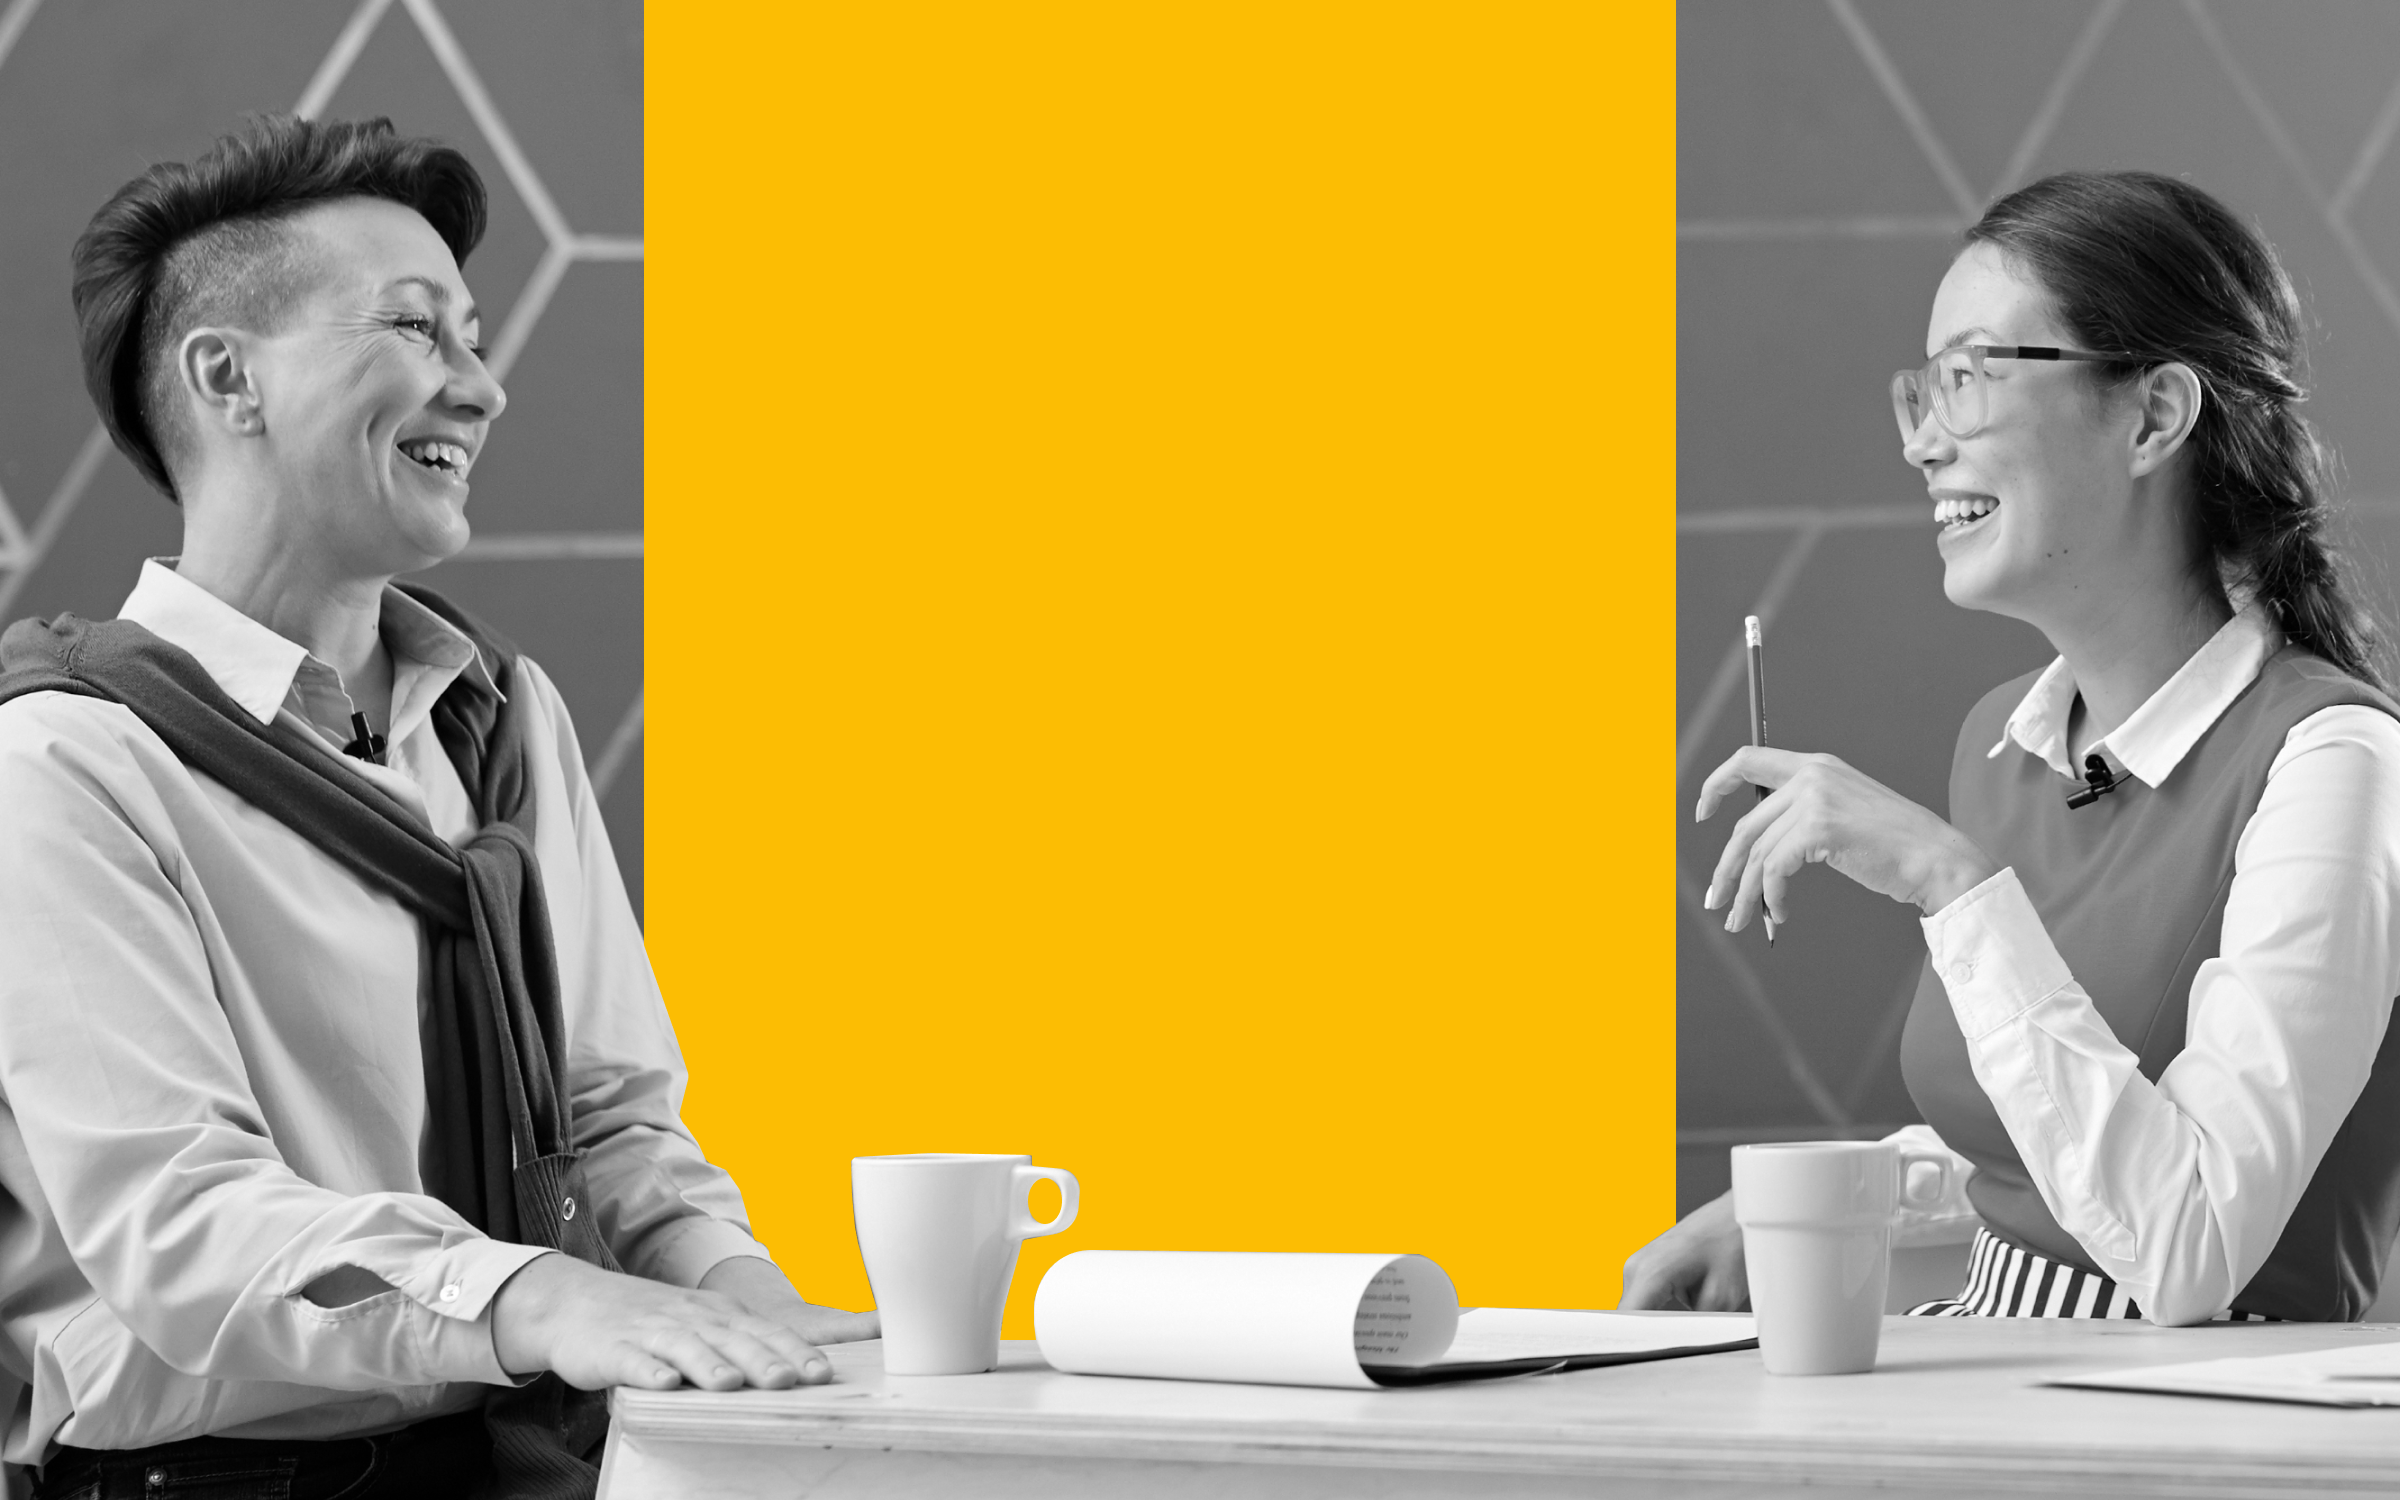 two women in a business setting talking over coffee. one has an undercut, the other is young and wearing glasses and a sweater vest